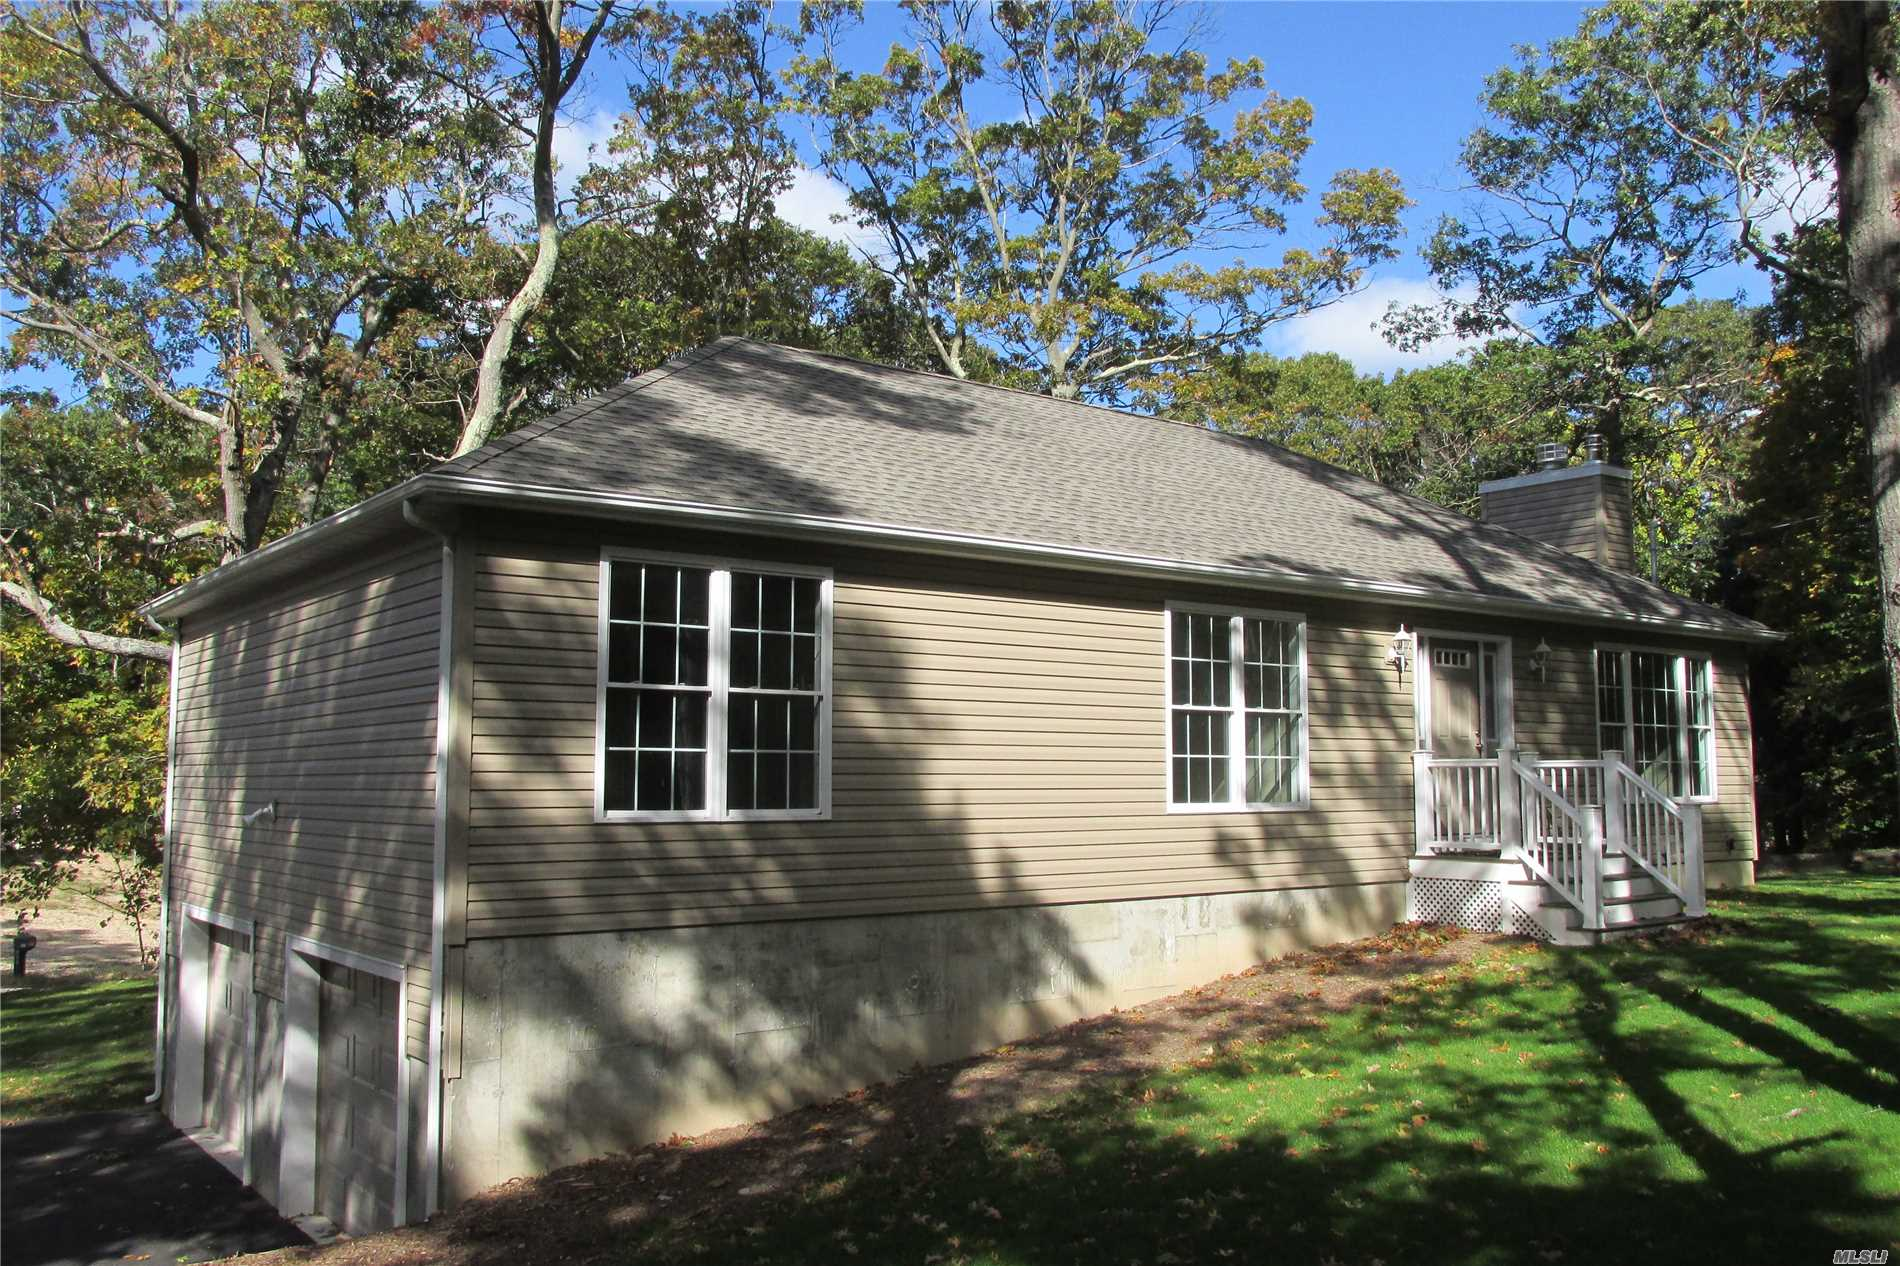 Rare New Construction, North Wading River, Shoreham Wading River Schools, Custom Energy Star Ranch, Oak Floors, Fireplace, Large Kitchen/Granite, Huge 2 Car Garage/9' Doors, Rear Deck, Ready In 30 Days For Occupancy ! Cac Available Peconic Tax Applies